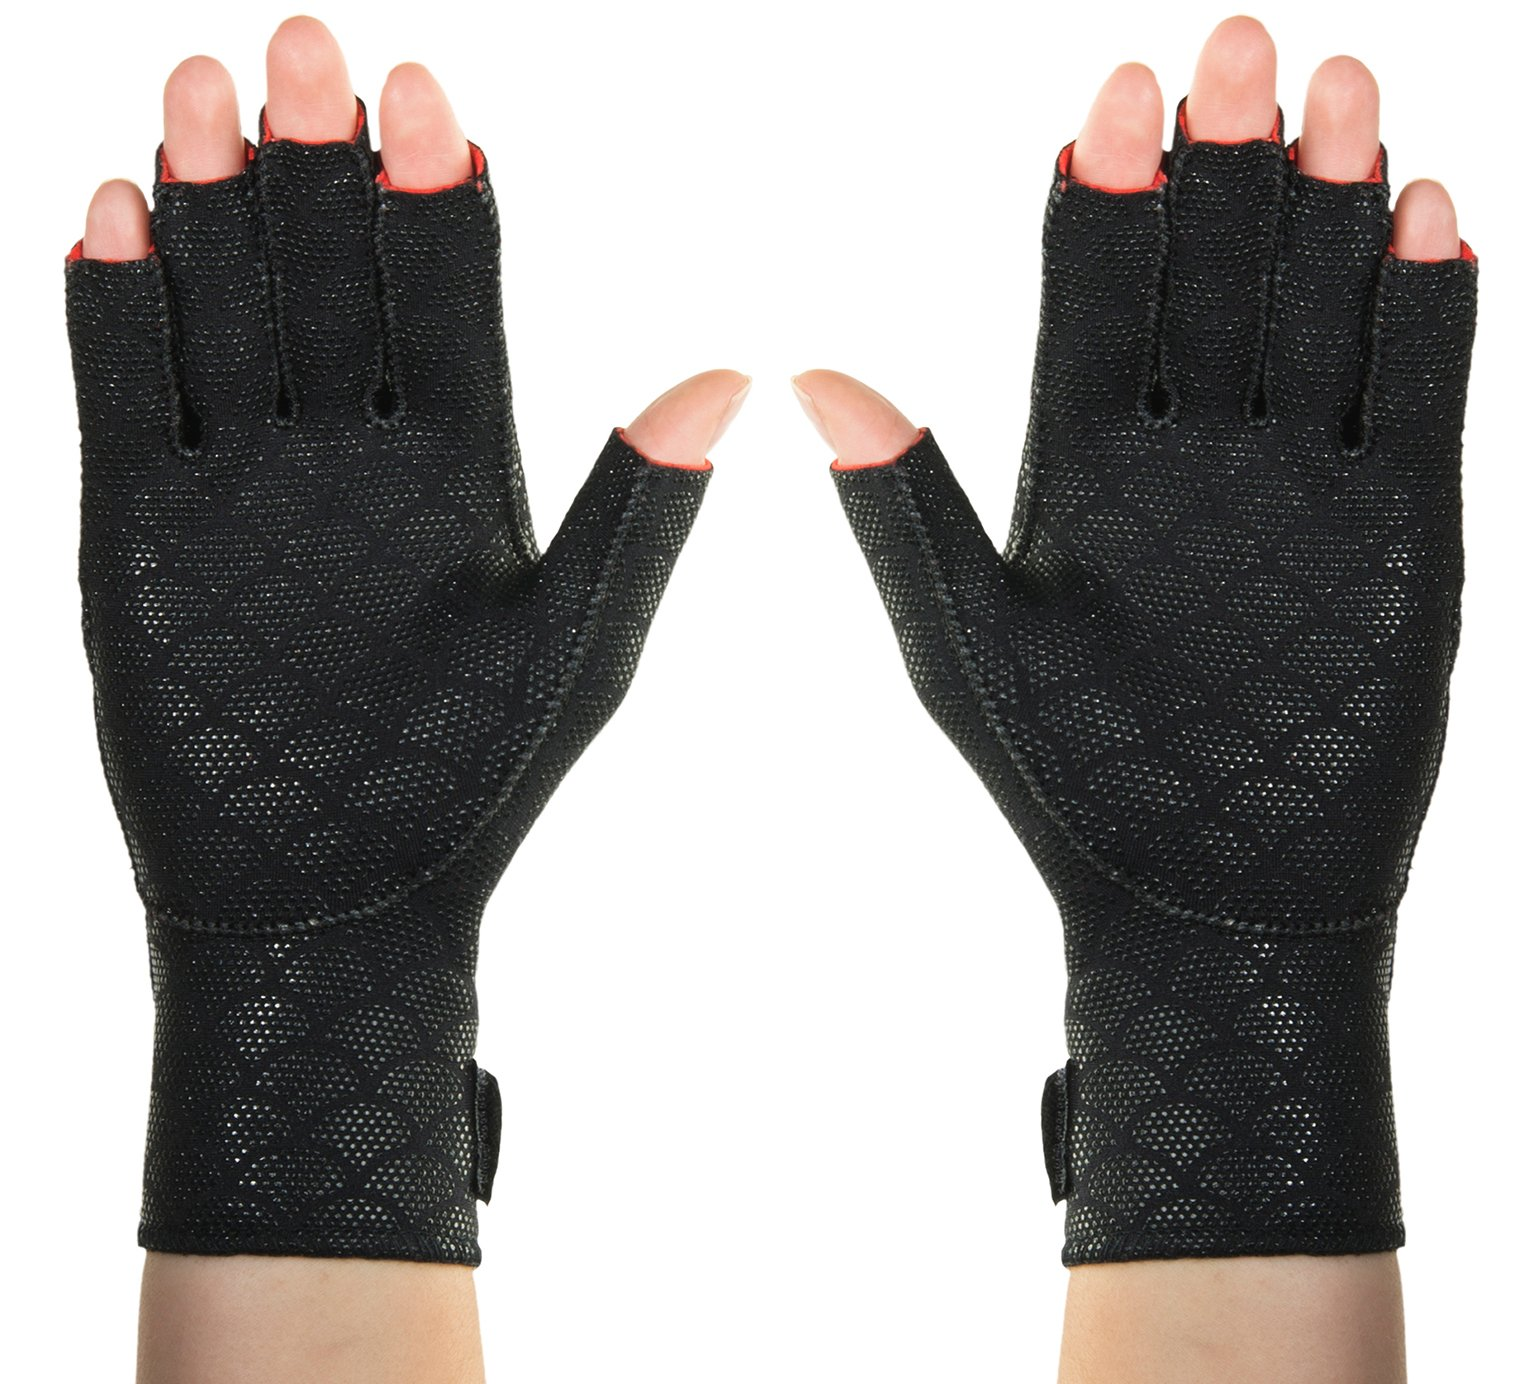 Thermoskin Arthritic Gloves Medium 8'' - 8.75'' Black (pair)